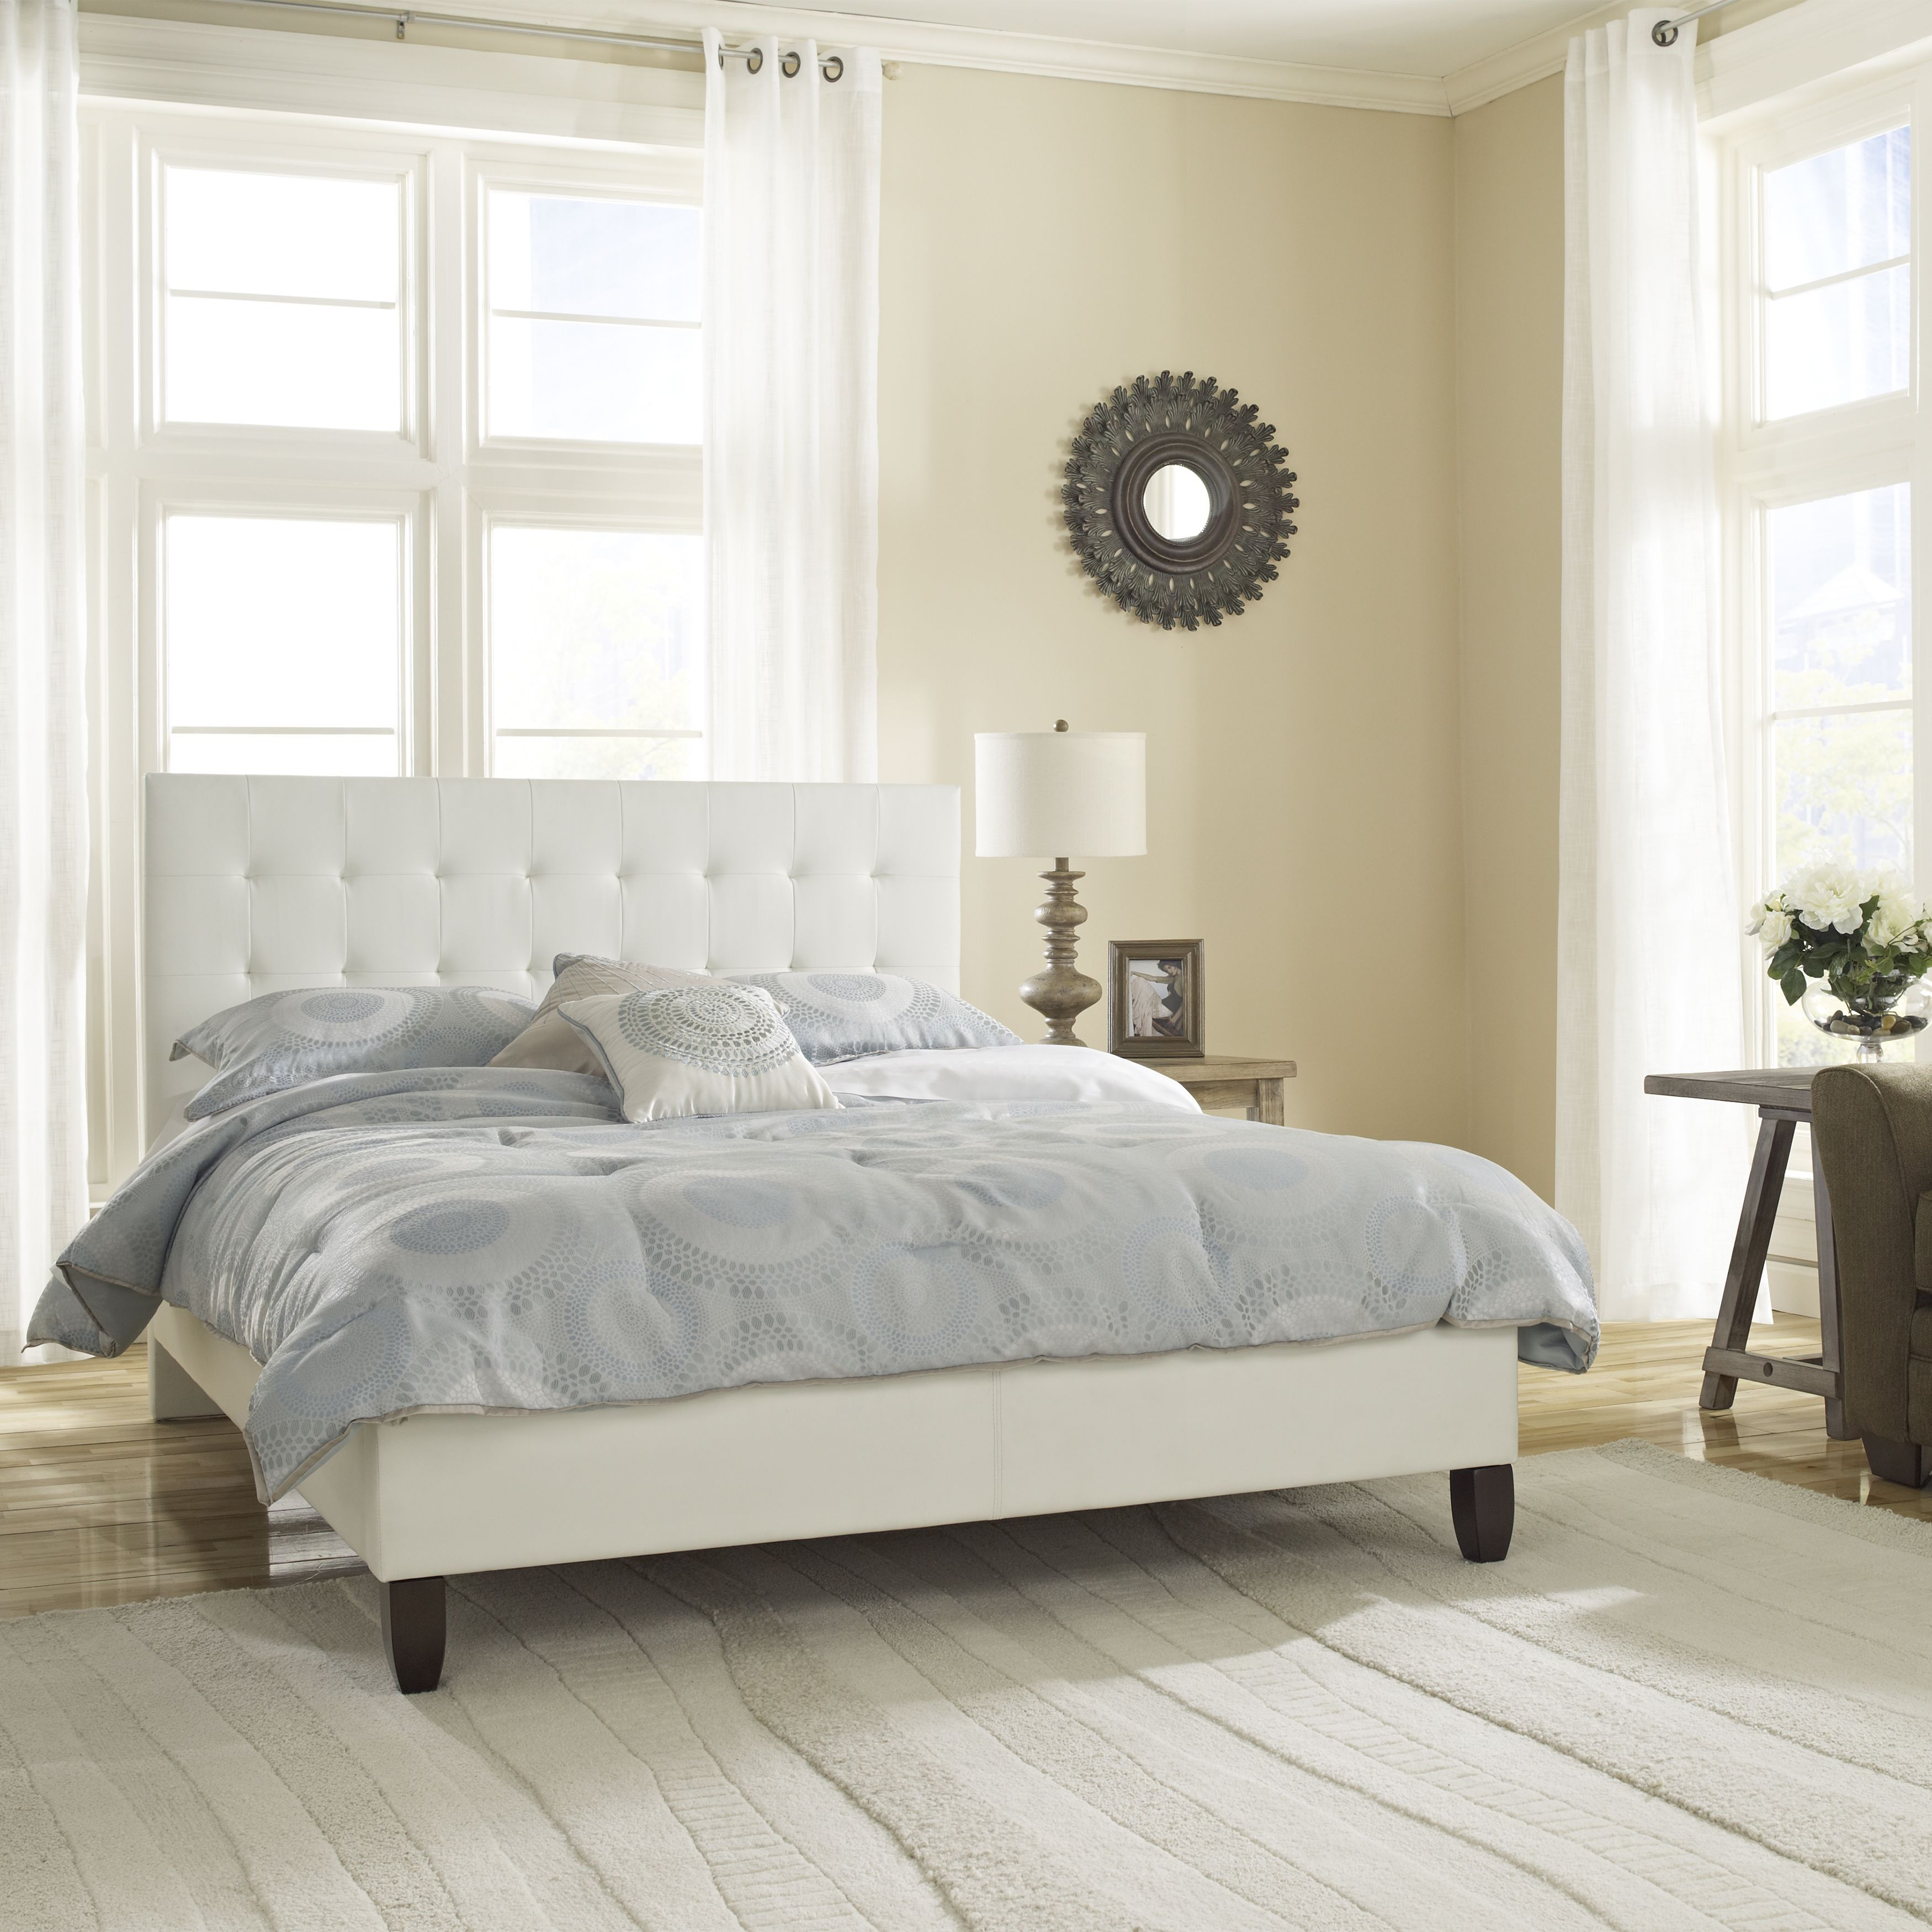 bedroom room colors the waverly platform bed is upholstered with white faux 10615